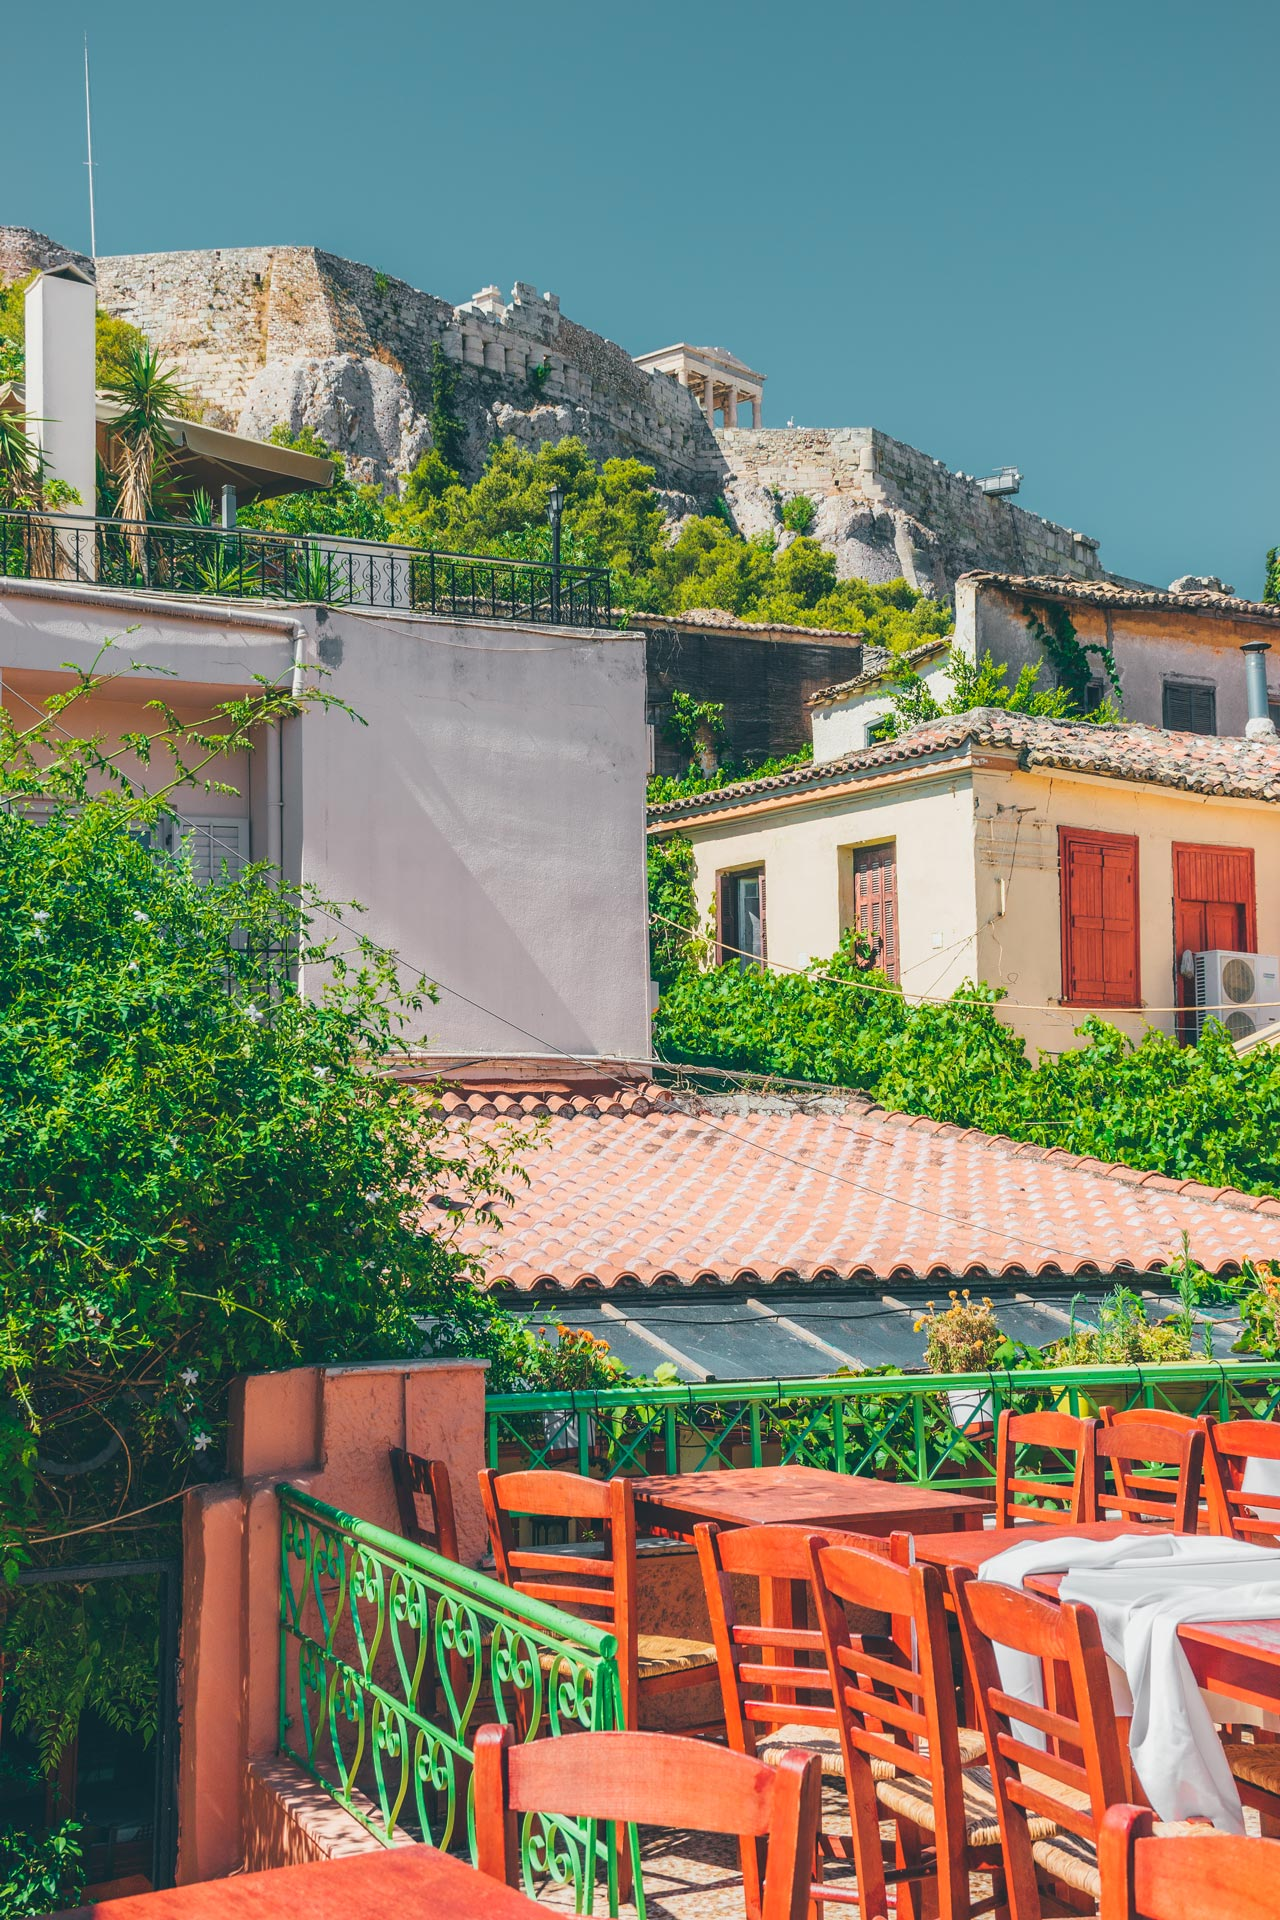 View of the Acropolis from a cafe in Plaka